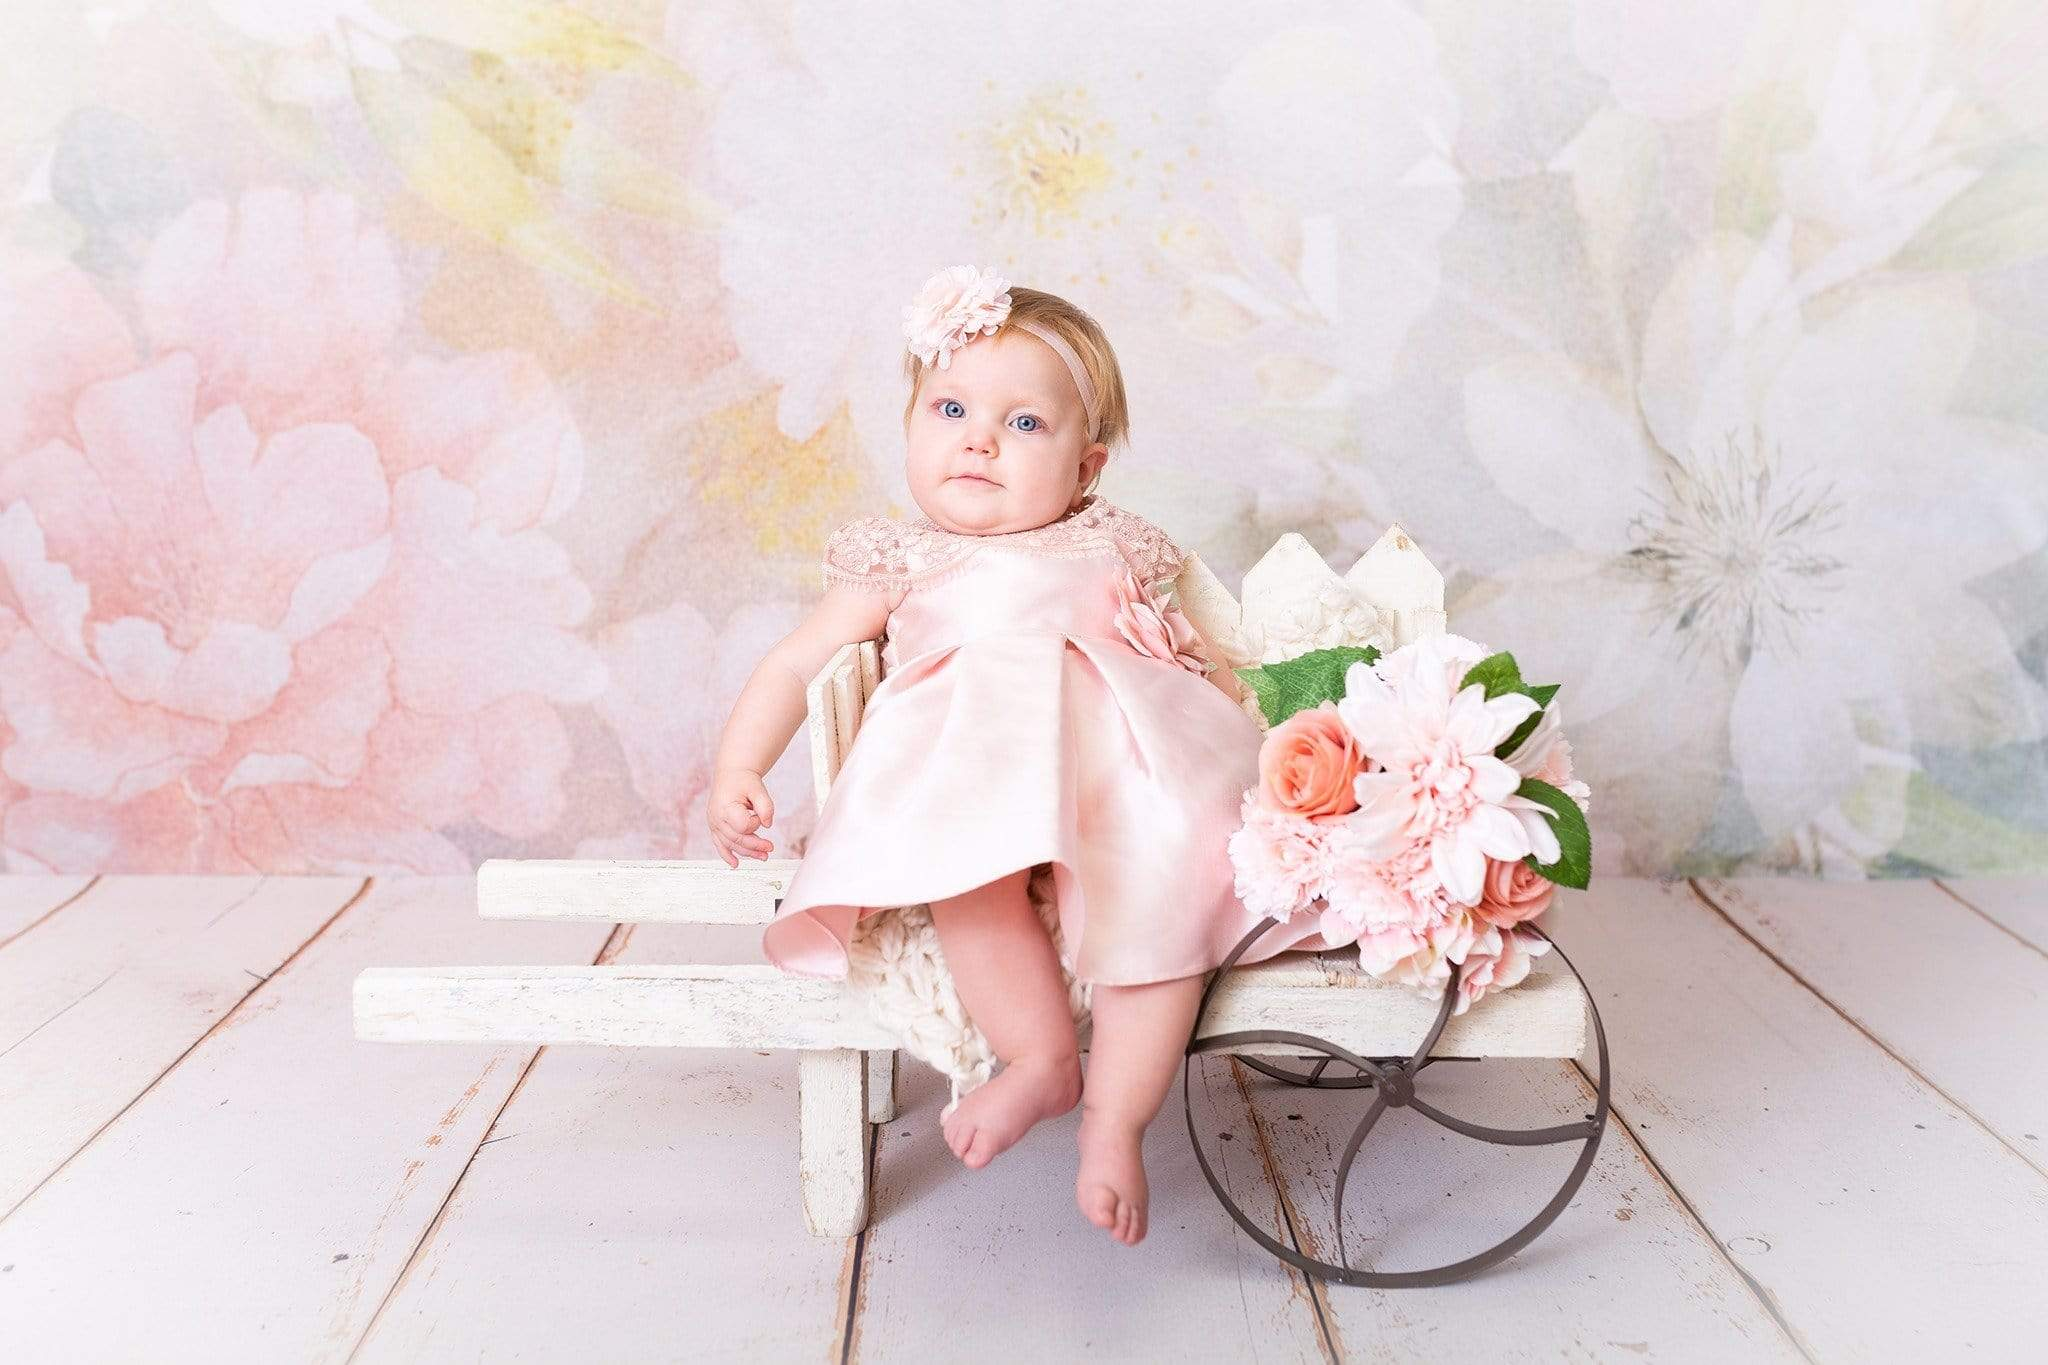 Load image into Gallery viewer, Katebackdrop:Kate Flowers Pastel Florals Backdrop for Photography Designed by Amanda Moffatt